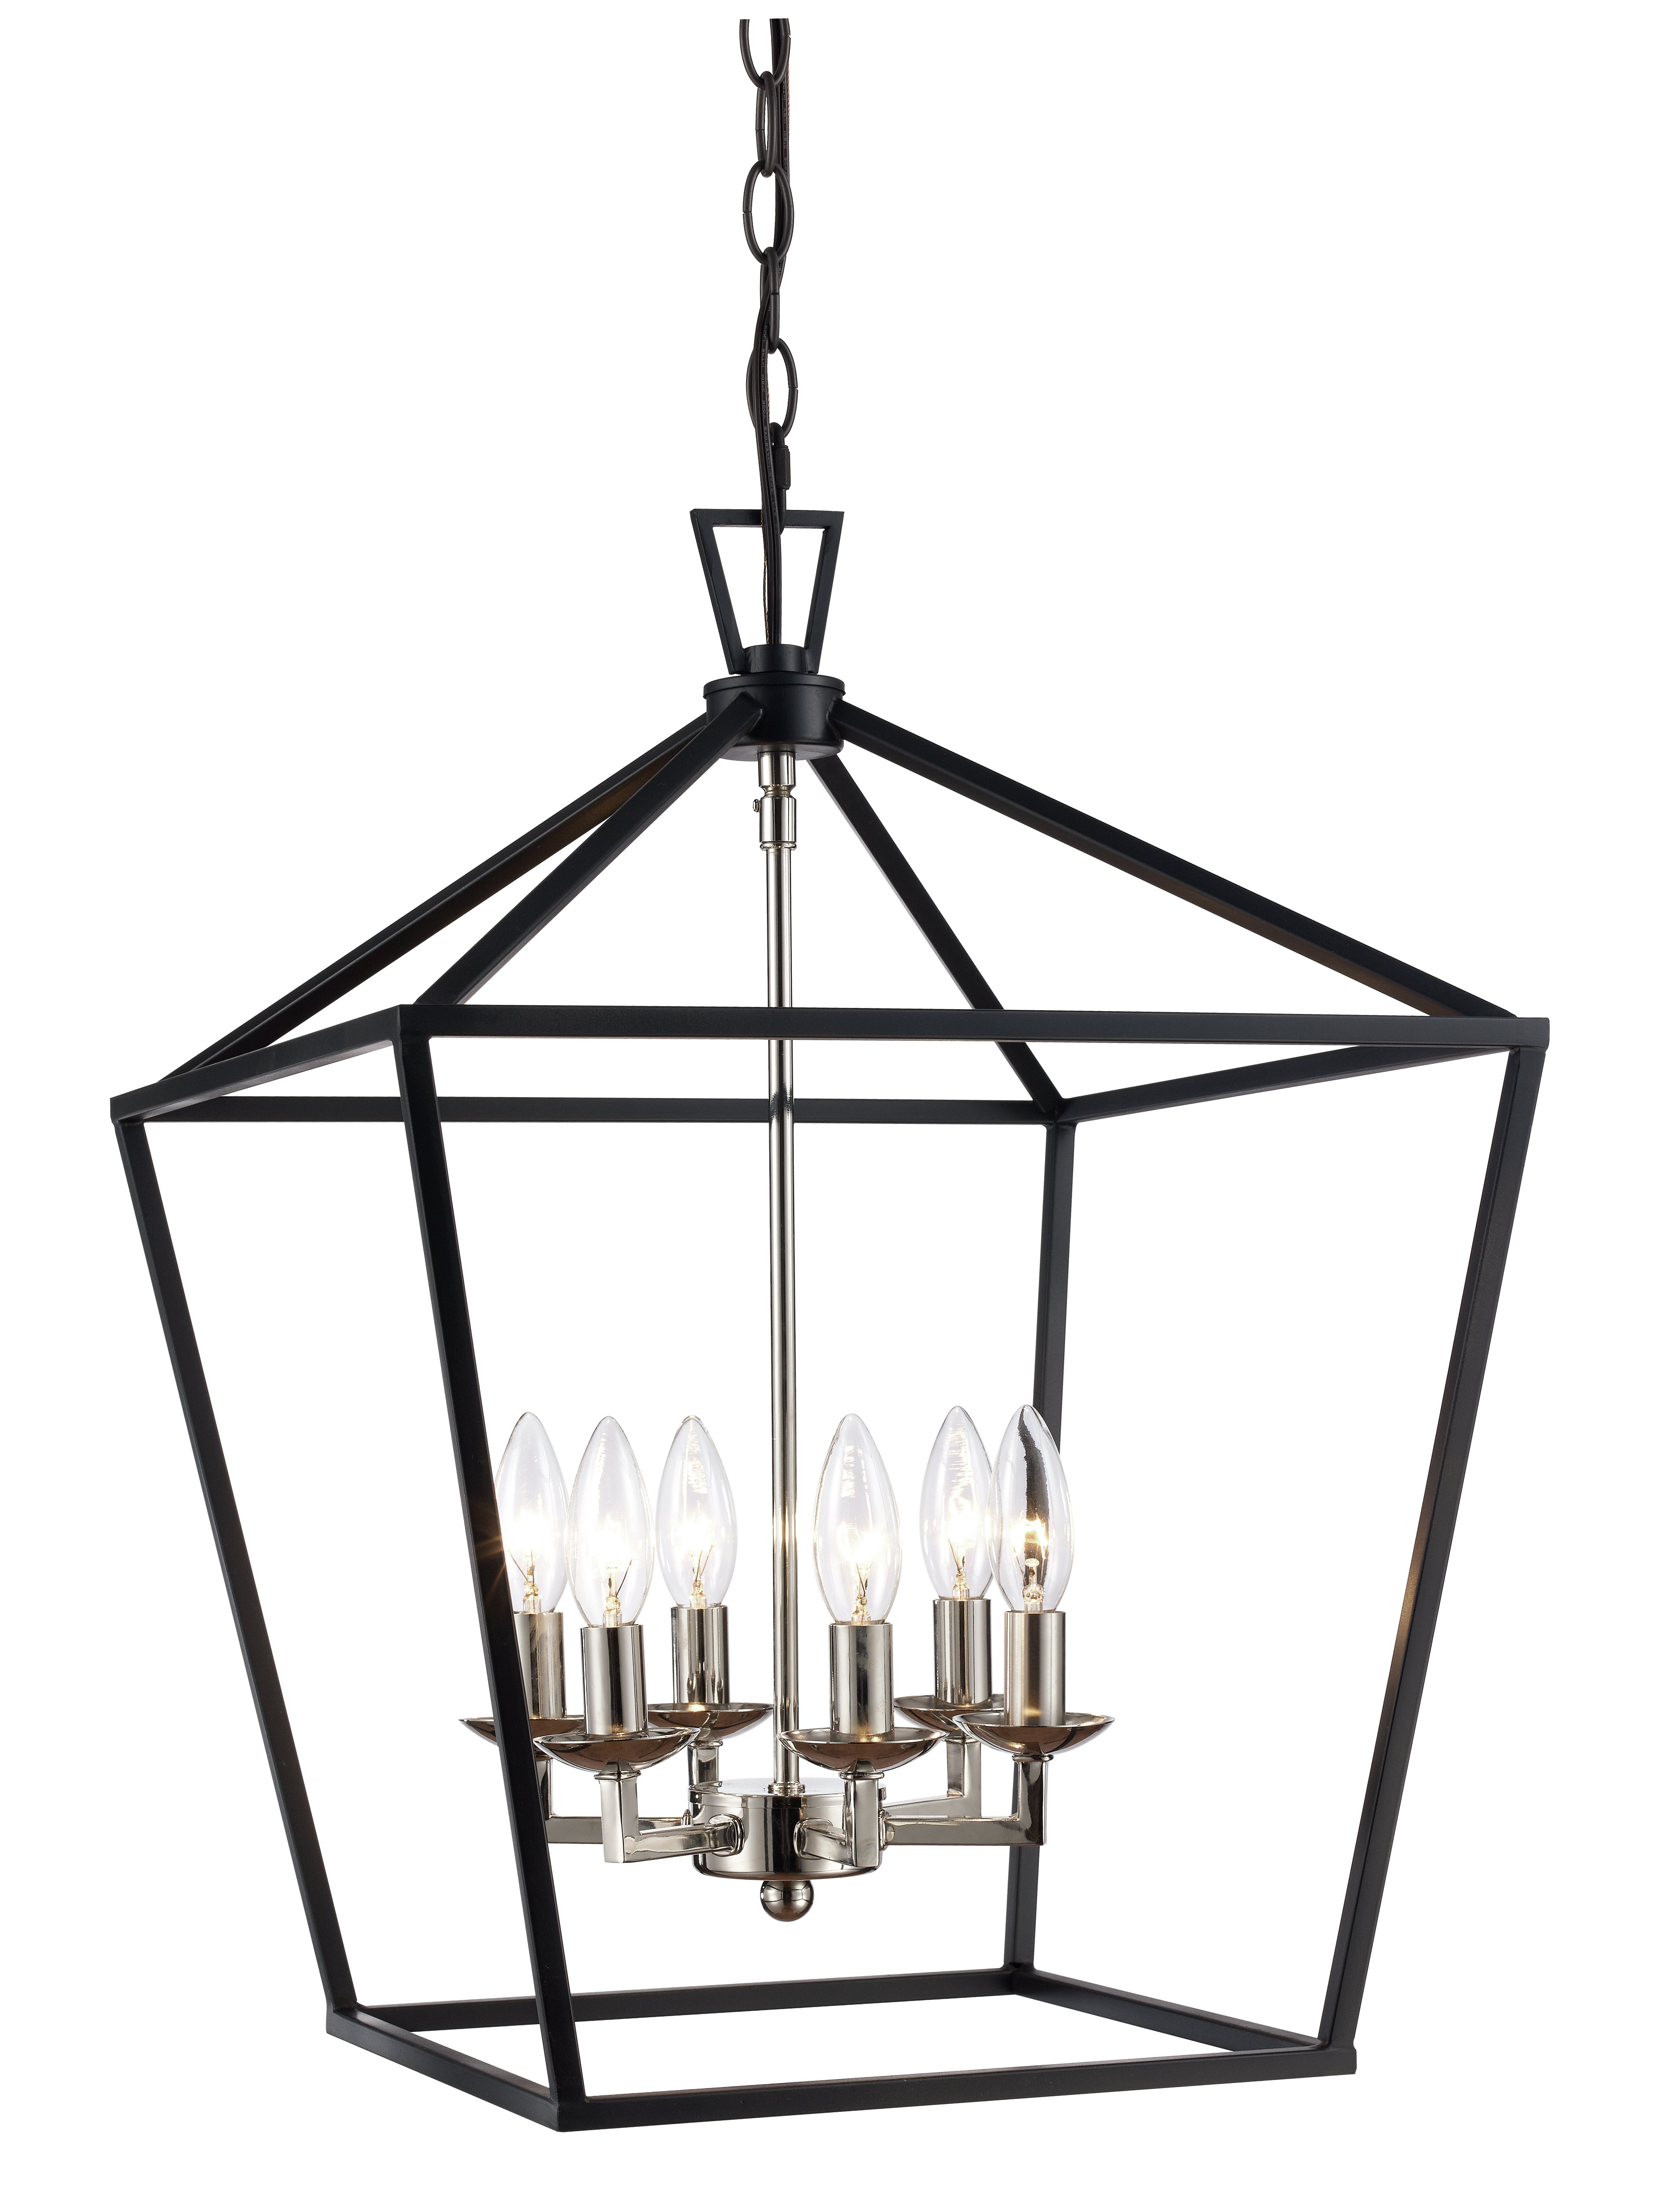 Most Recently Released Carmen 6 Light Lantern Geometric Pendants Throughout Carmen 6 Light Lantern Geometric Pendant (View 4 of 25)